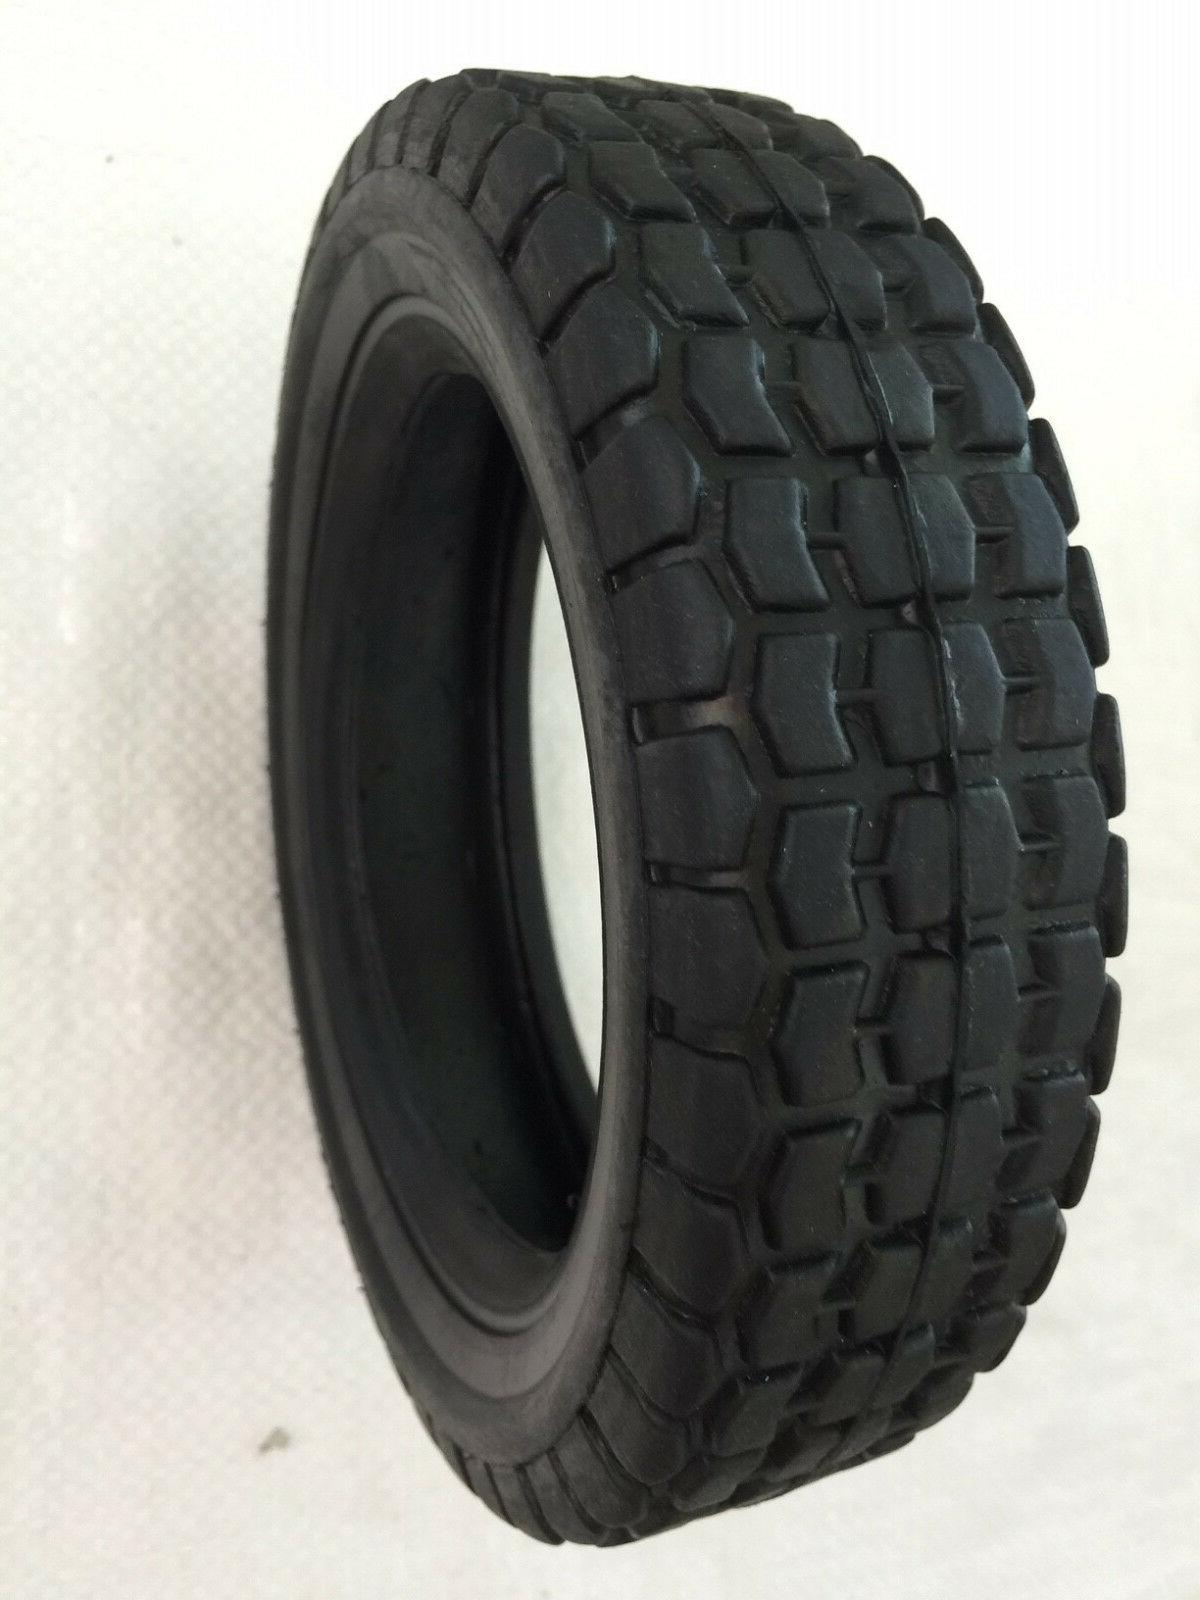 """Mclane Edger & Rotary Mower Replacement 8""""Tire Rep."""